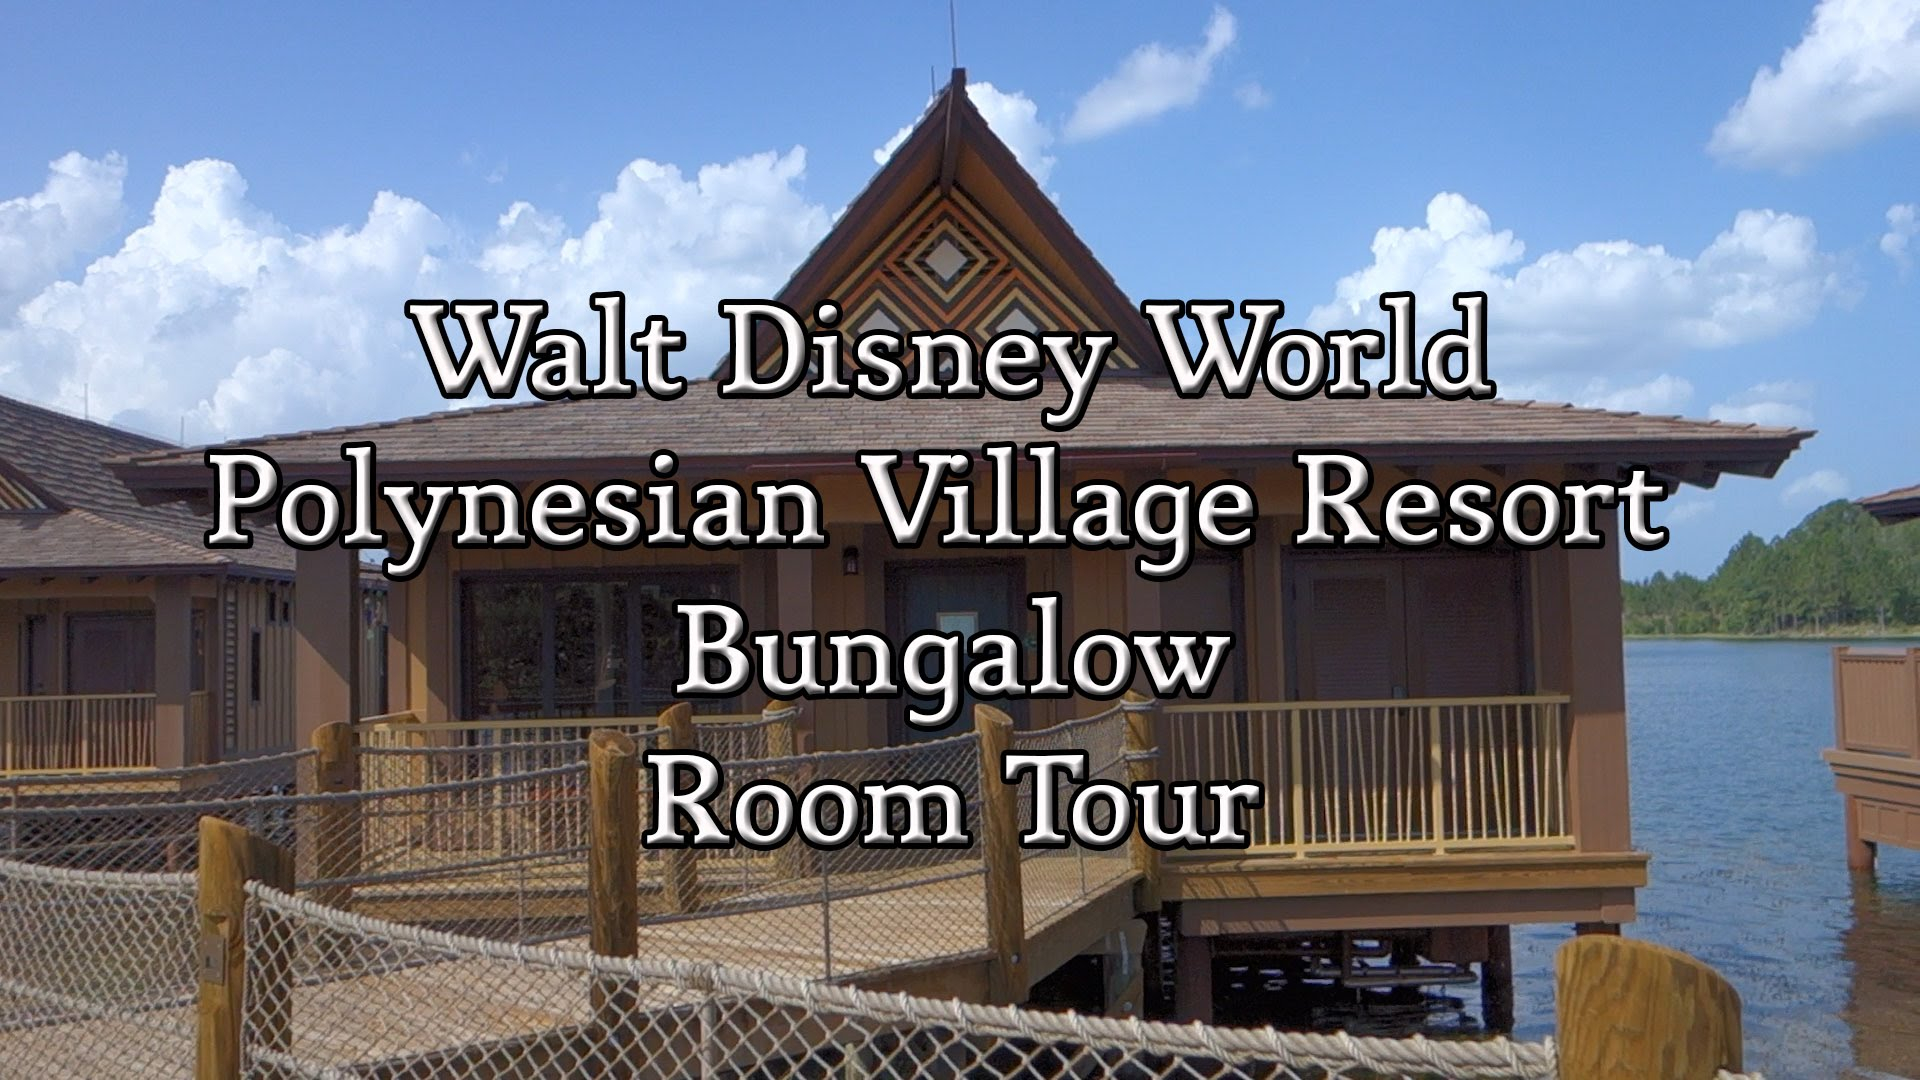 Modern Disney World - Polynesian Village Resort Bungalow Room Tour - Youtube in Disney Polynesian Resort Bungalows